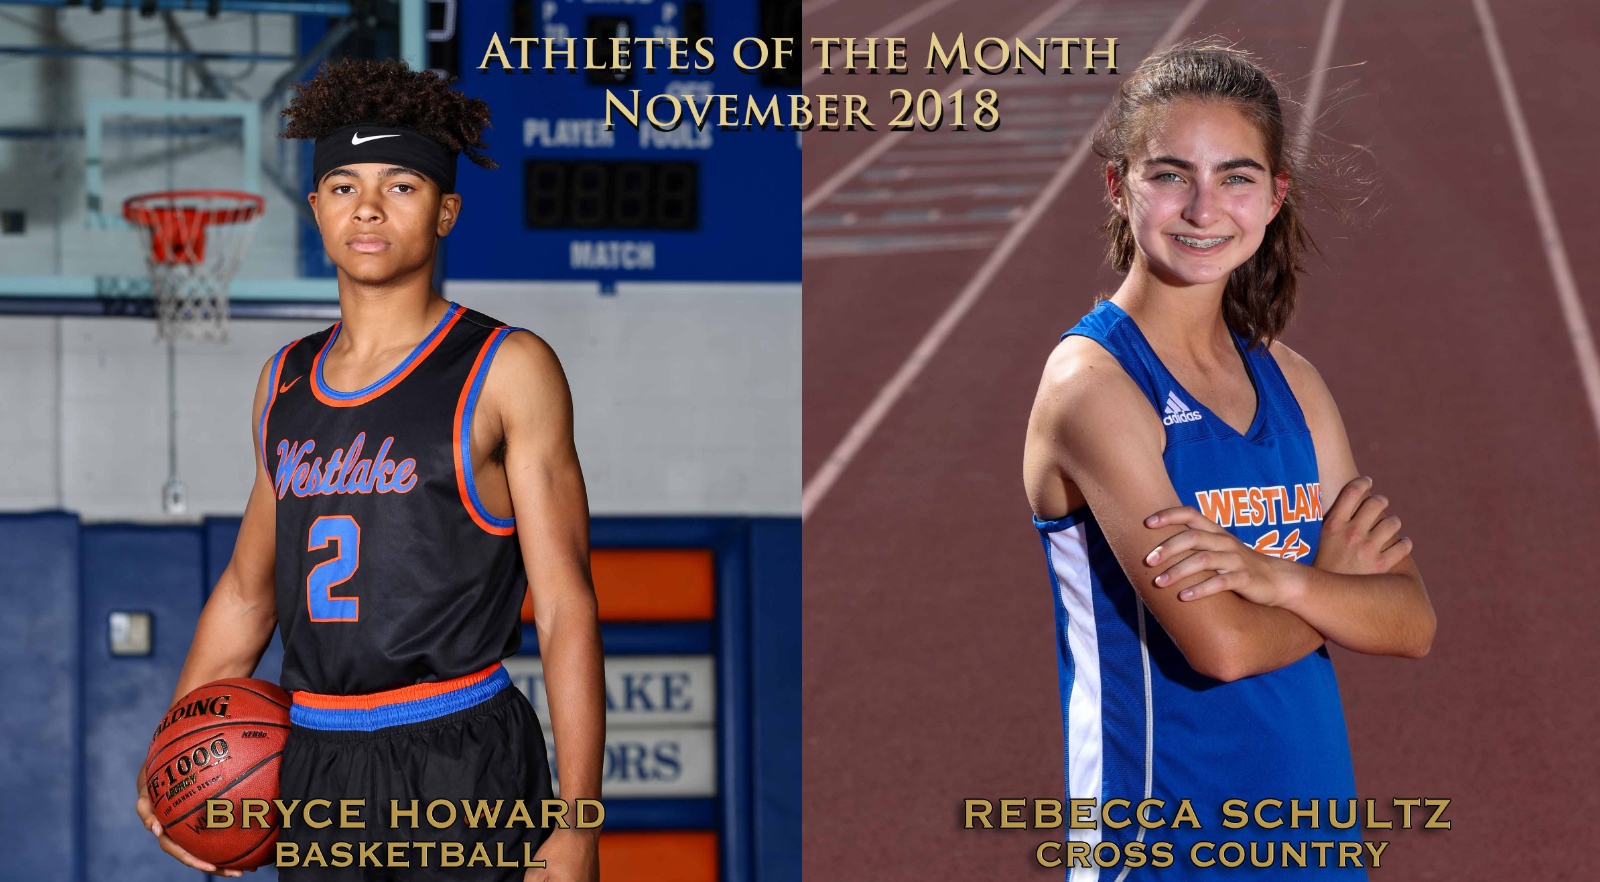 WHS November Athletes of the Month